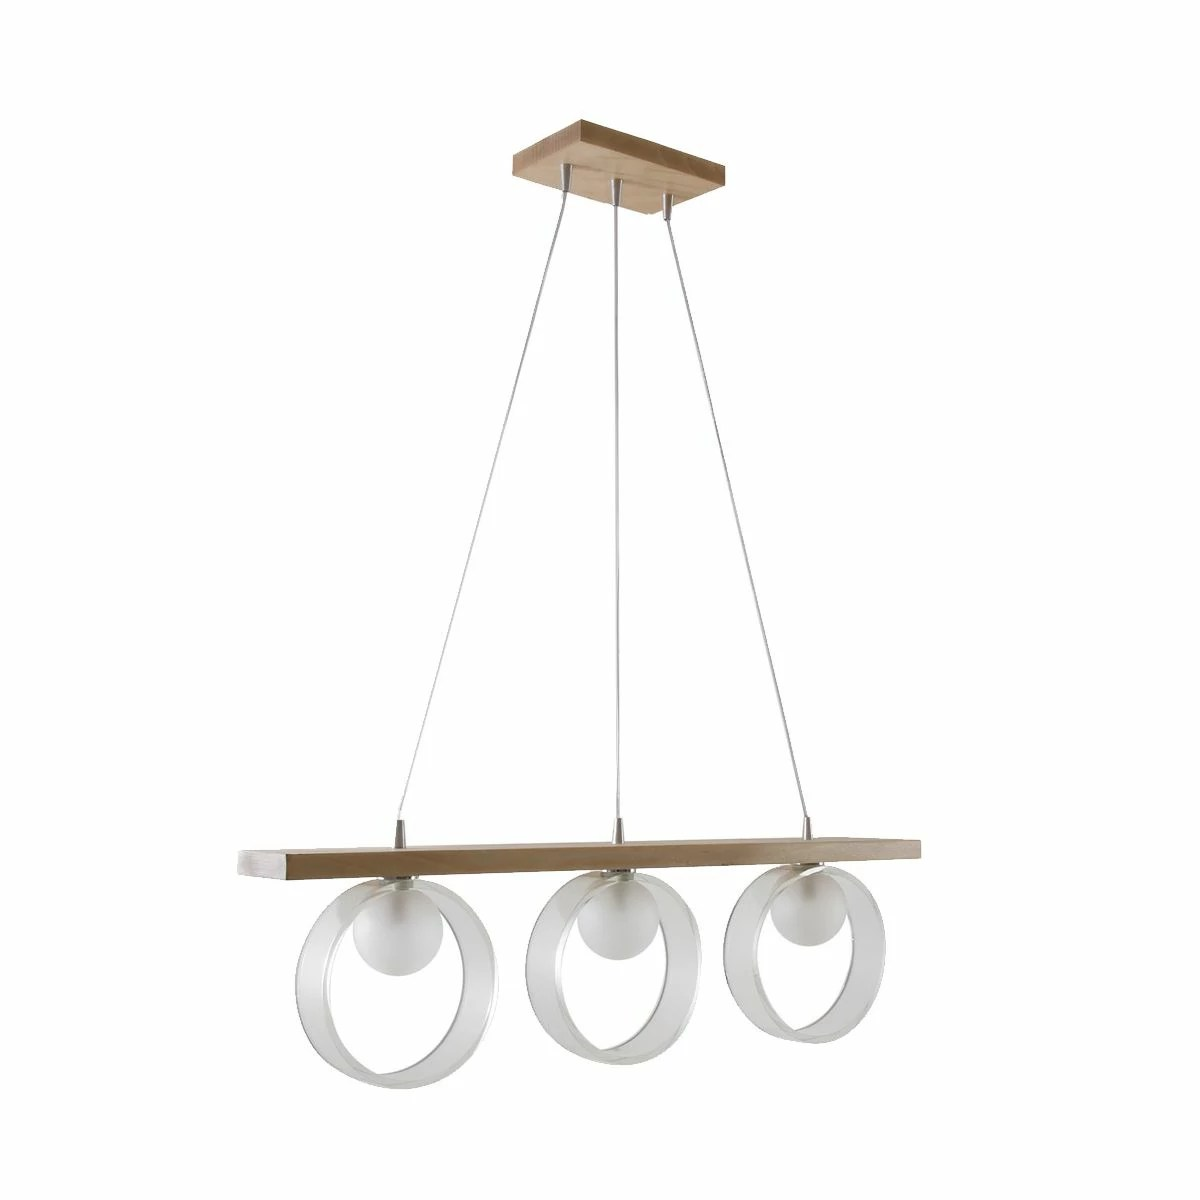 Suspension Moderne Suspension Moderne Ego Concept Verre